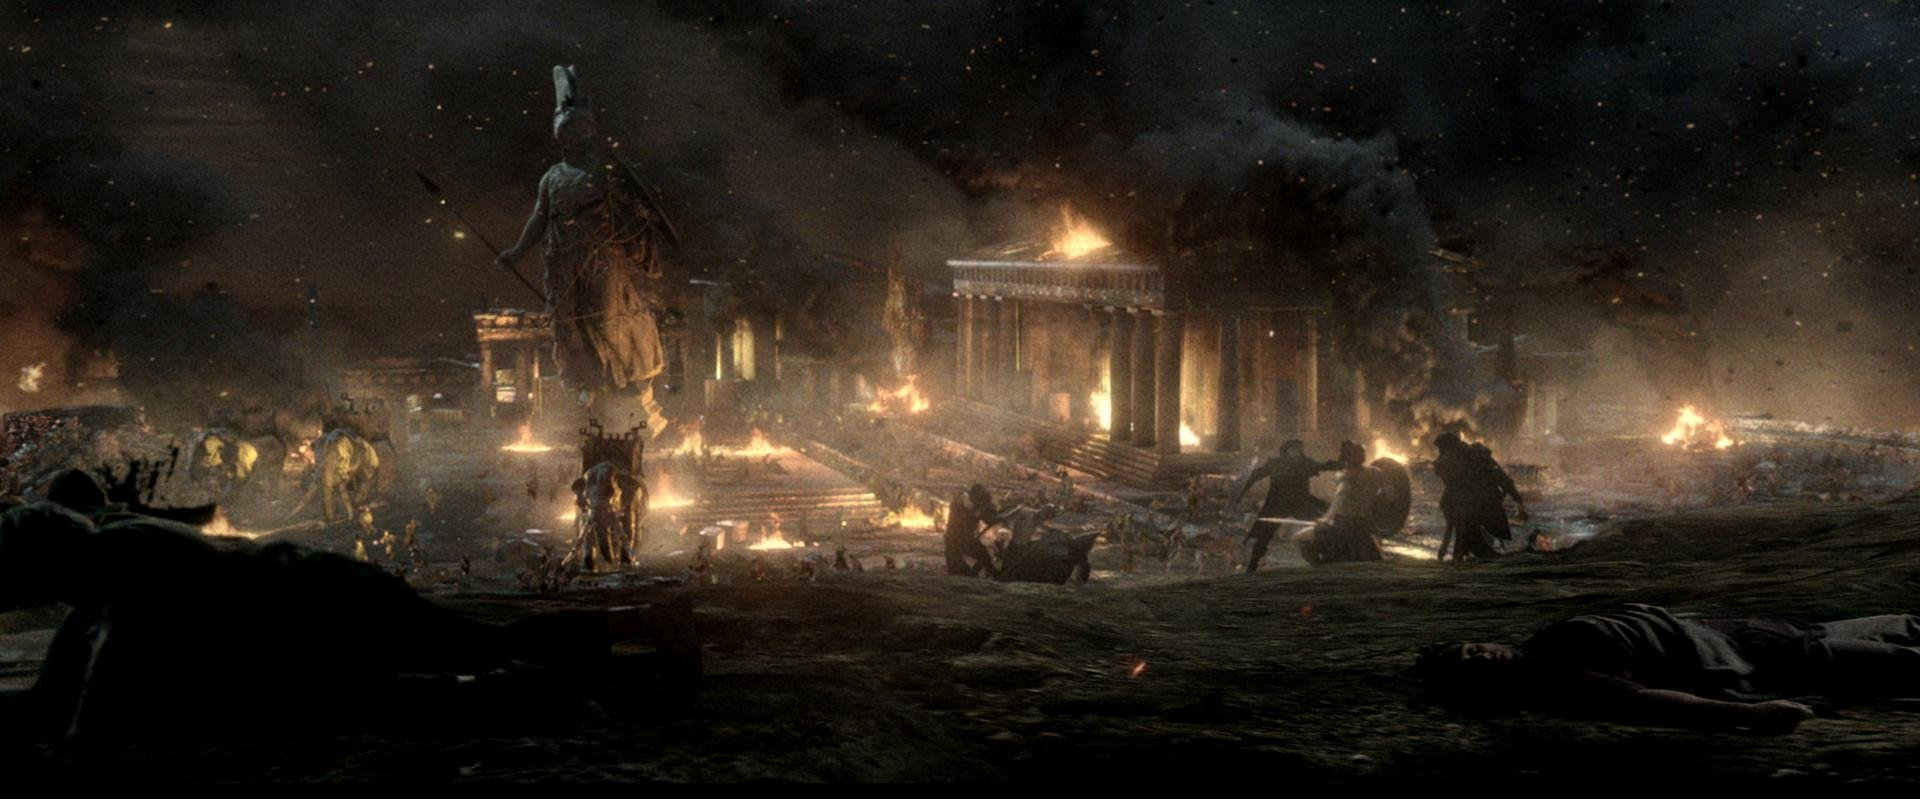 Click image for larger version  Name:Rome.jpg Views:41 Size:152.7 KB ID:1349954